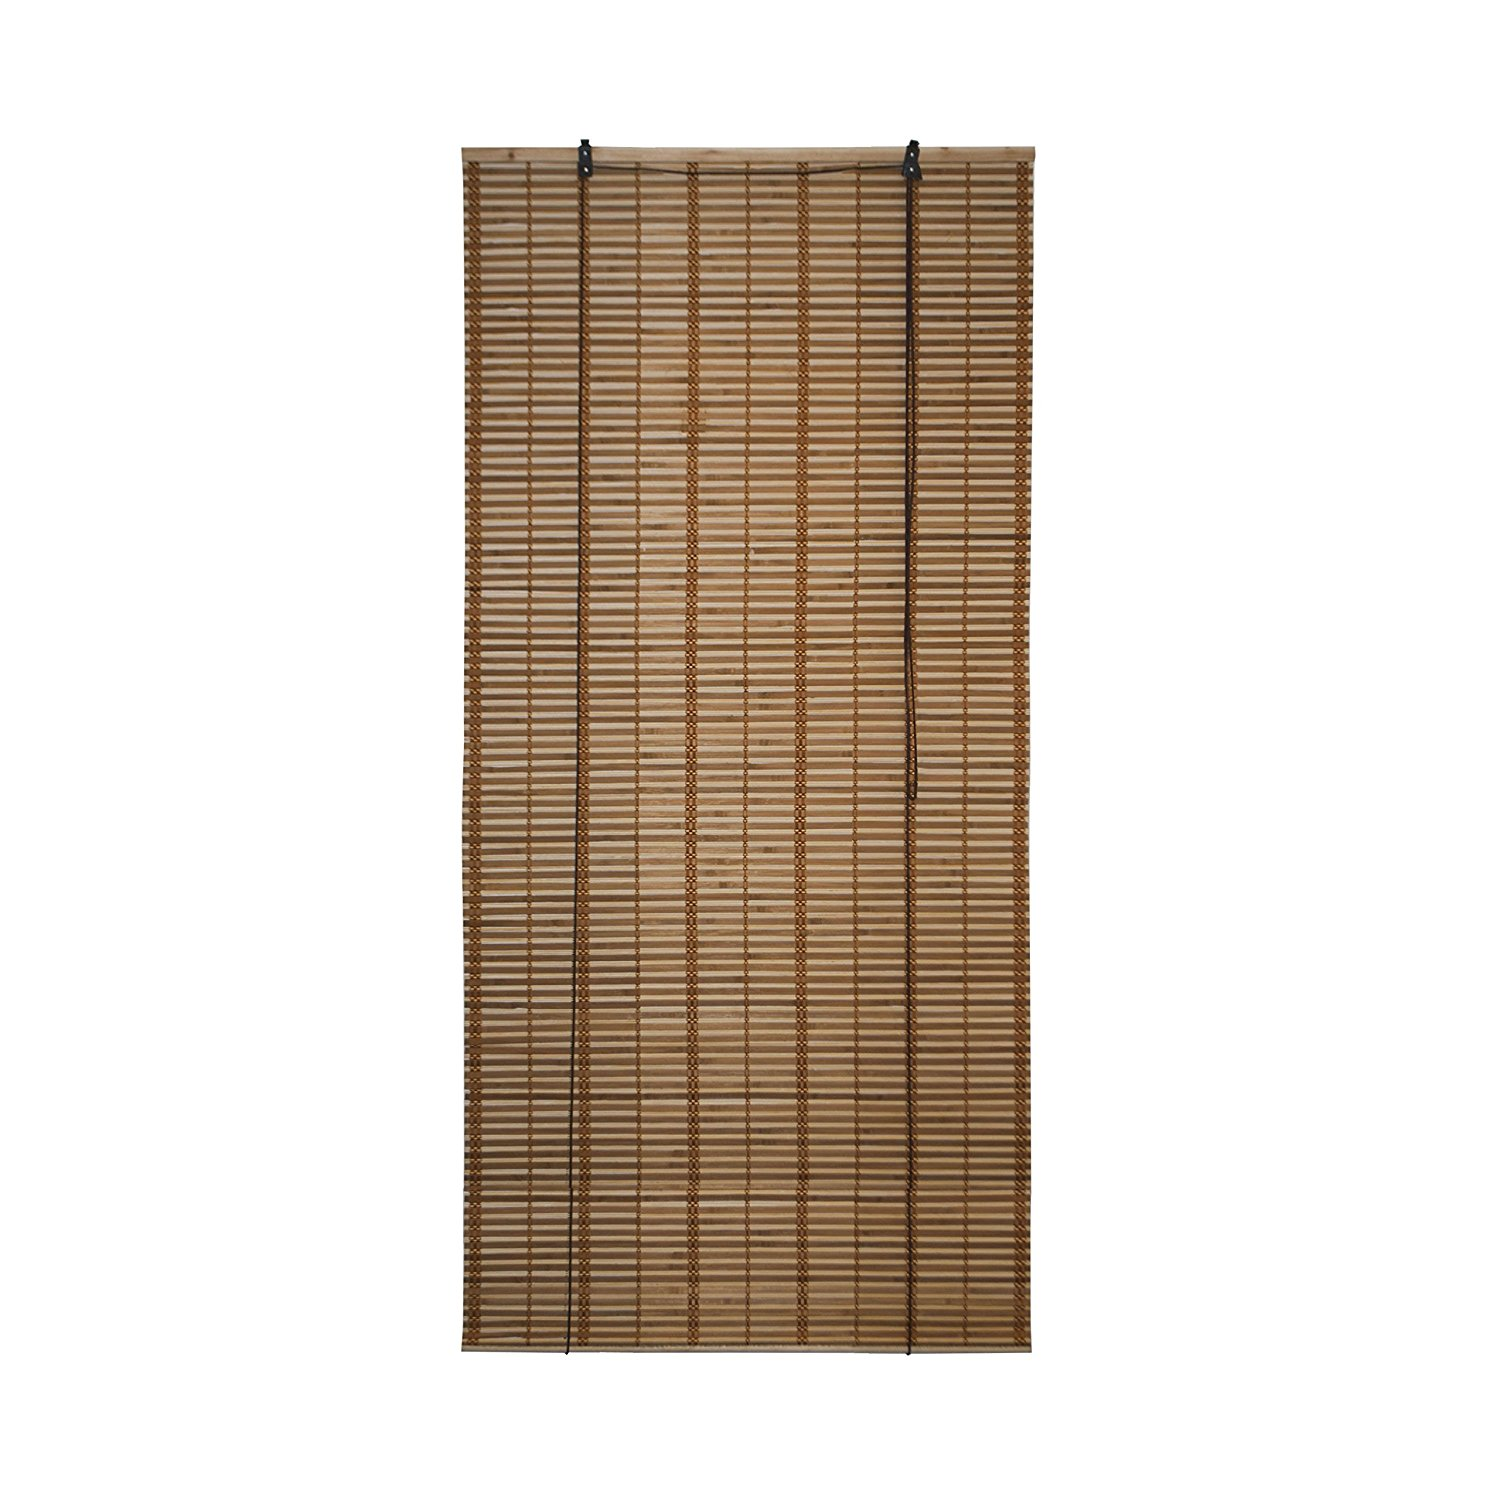 Light Brown Bamboo Midollino Wooden Roll Up Blinds Light Filtering Shades 36X72